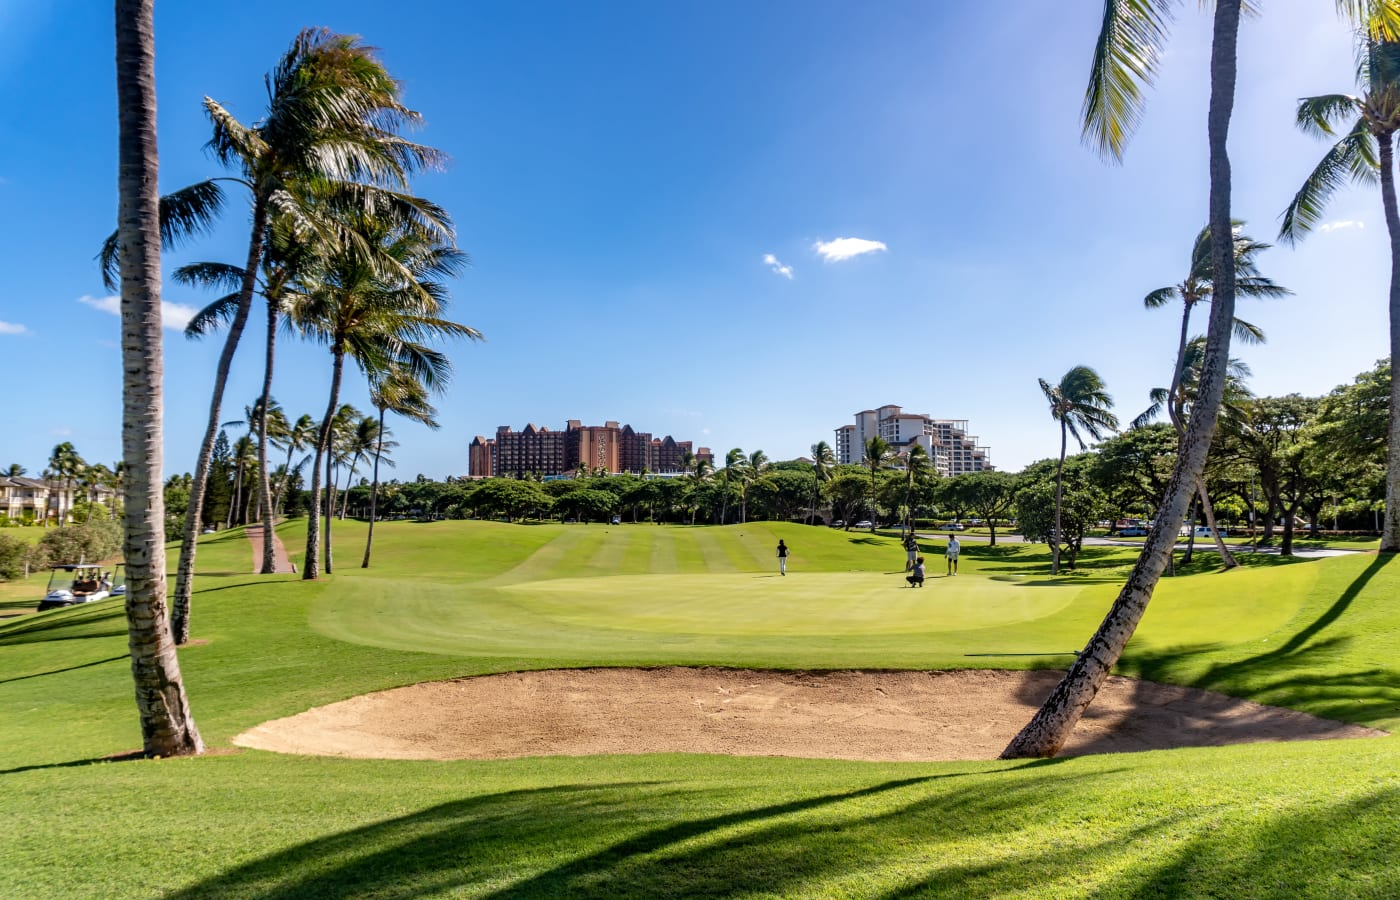 World-class golf course near Kapolei Lofts in Kapolei, Hawaii